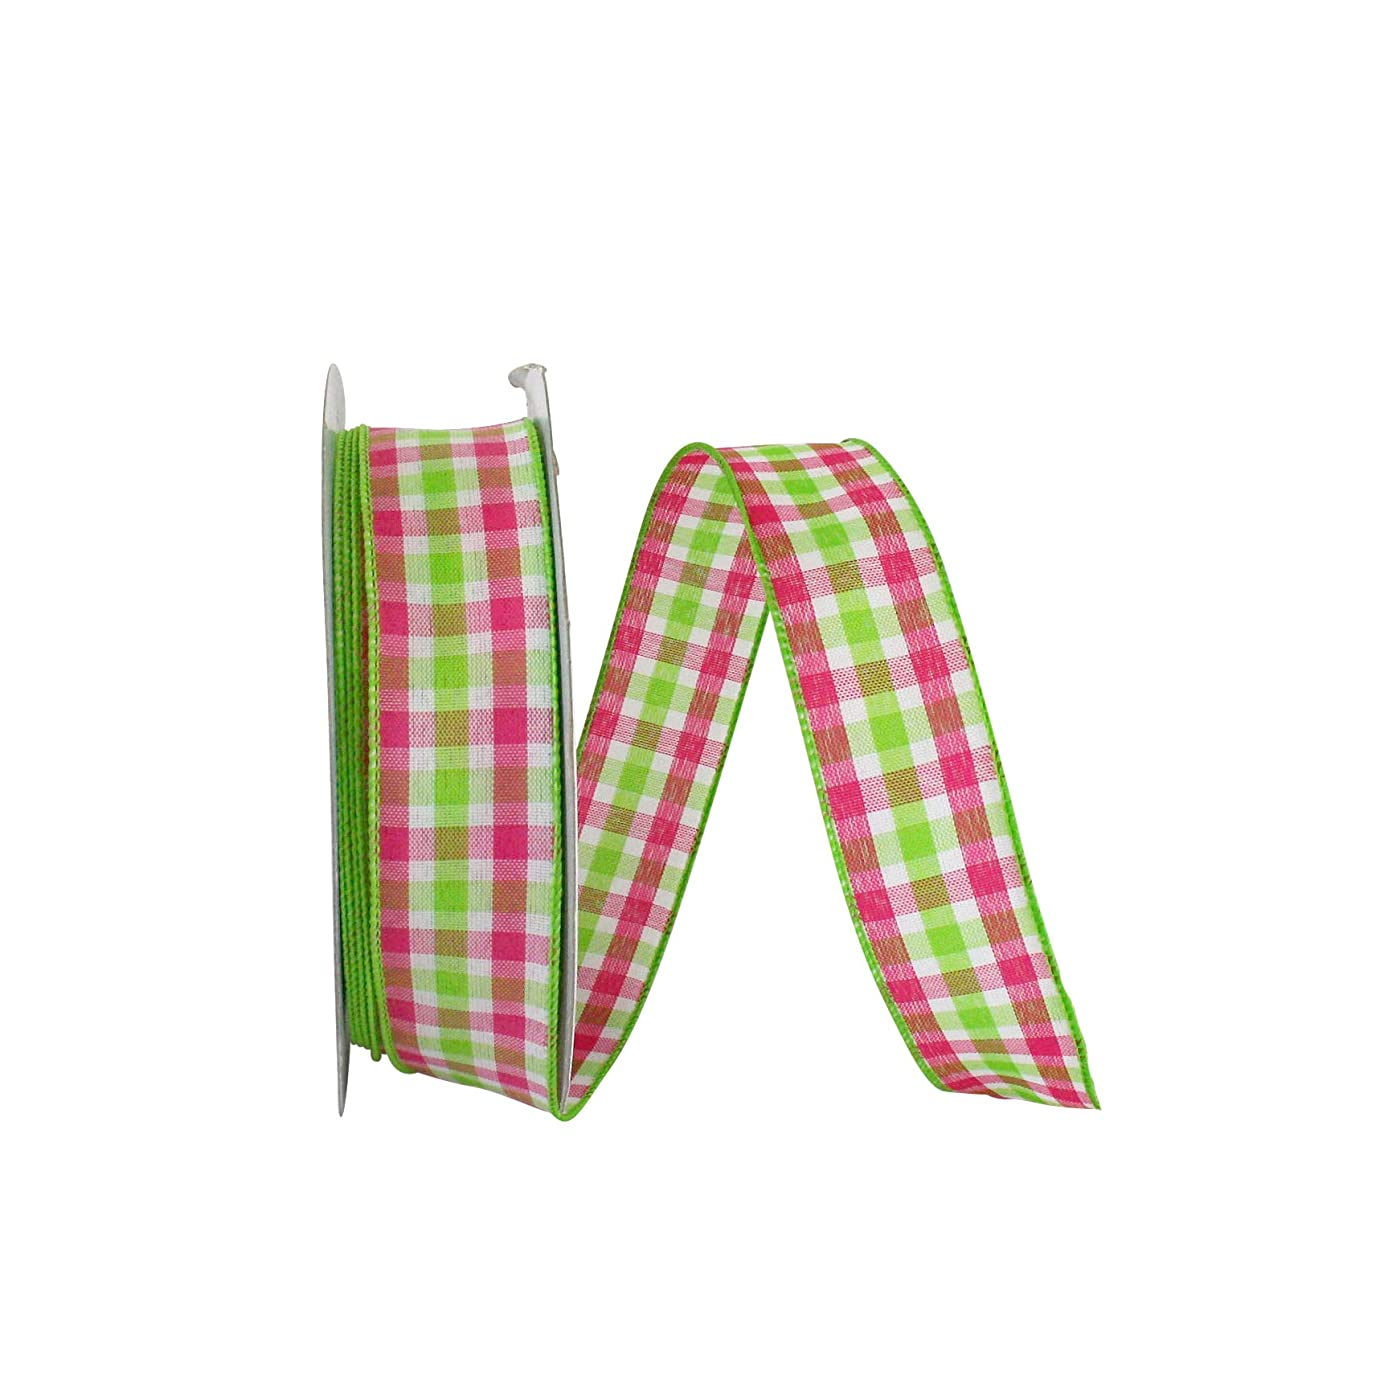 Reliant Ribbon 93090W-433-09K Plaid Watermelon Value Wired Edge Ribbon, 1-1/2 Inch X 50 Yards, Lime/Pink